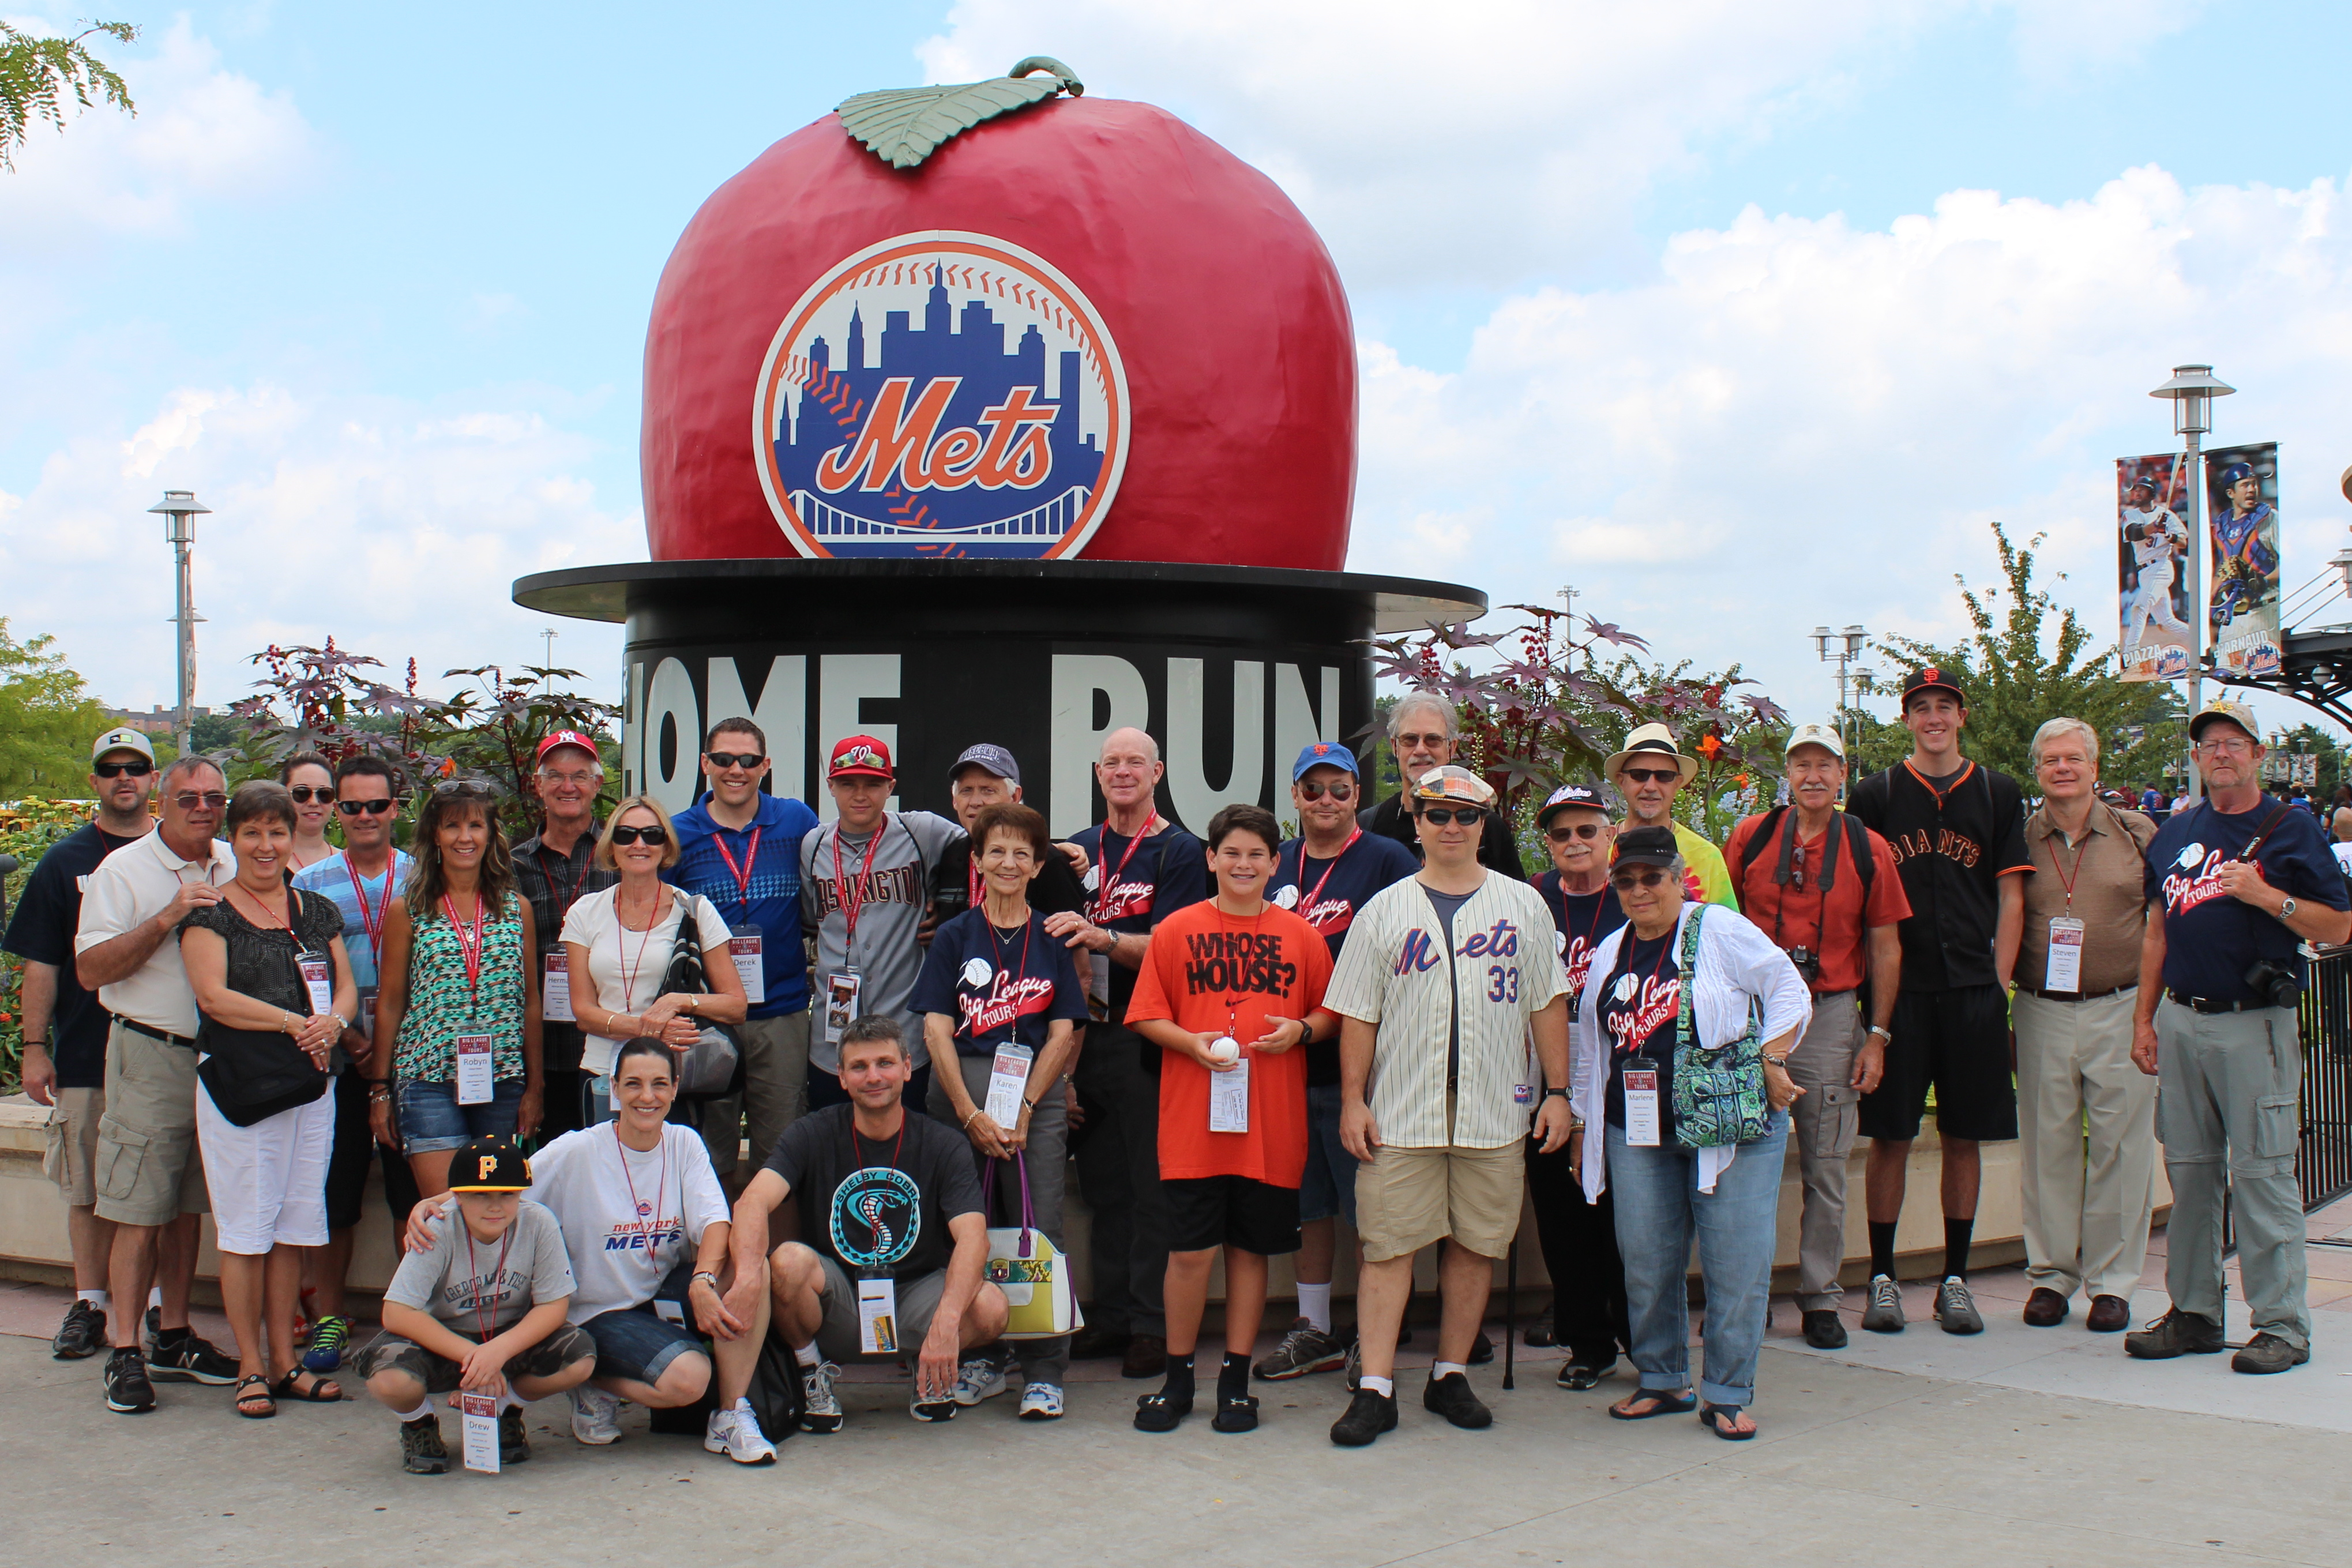 Group tour at Citi Field in New York City